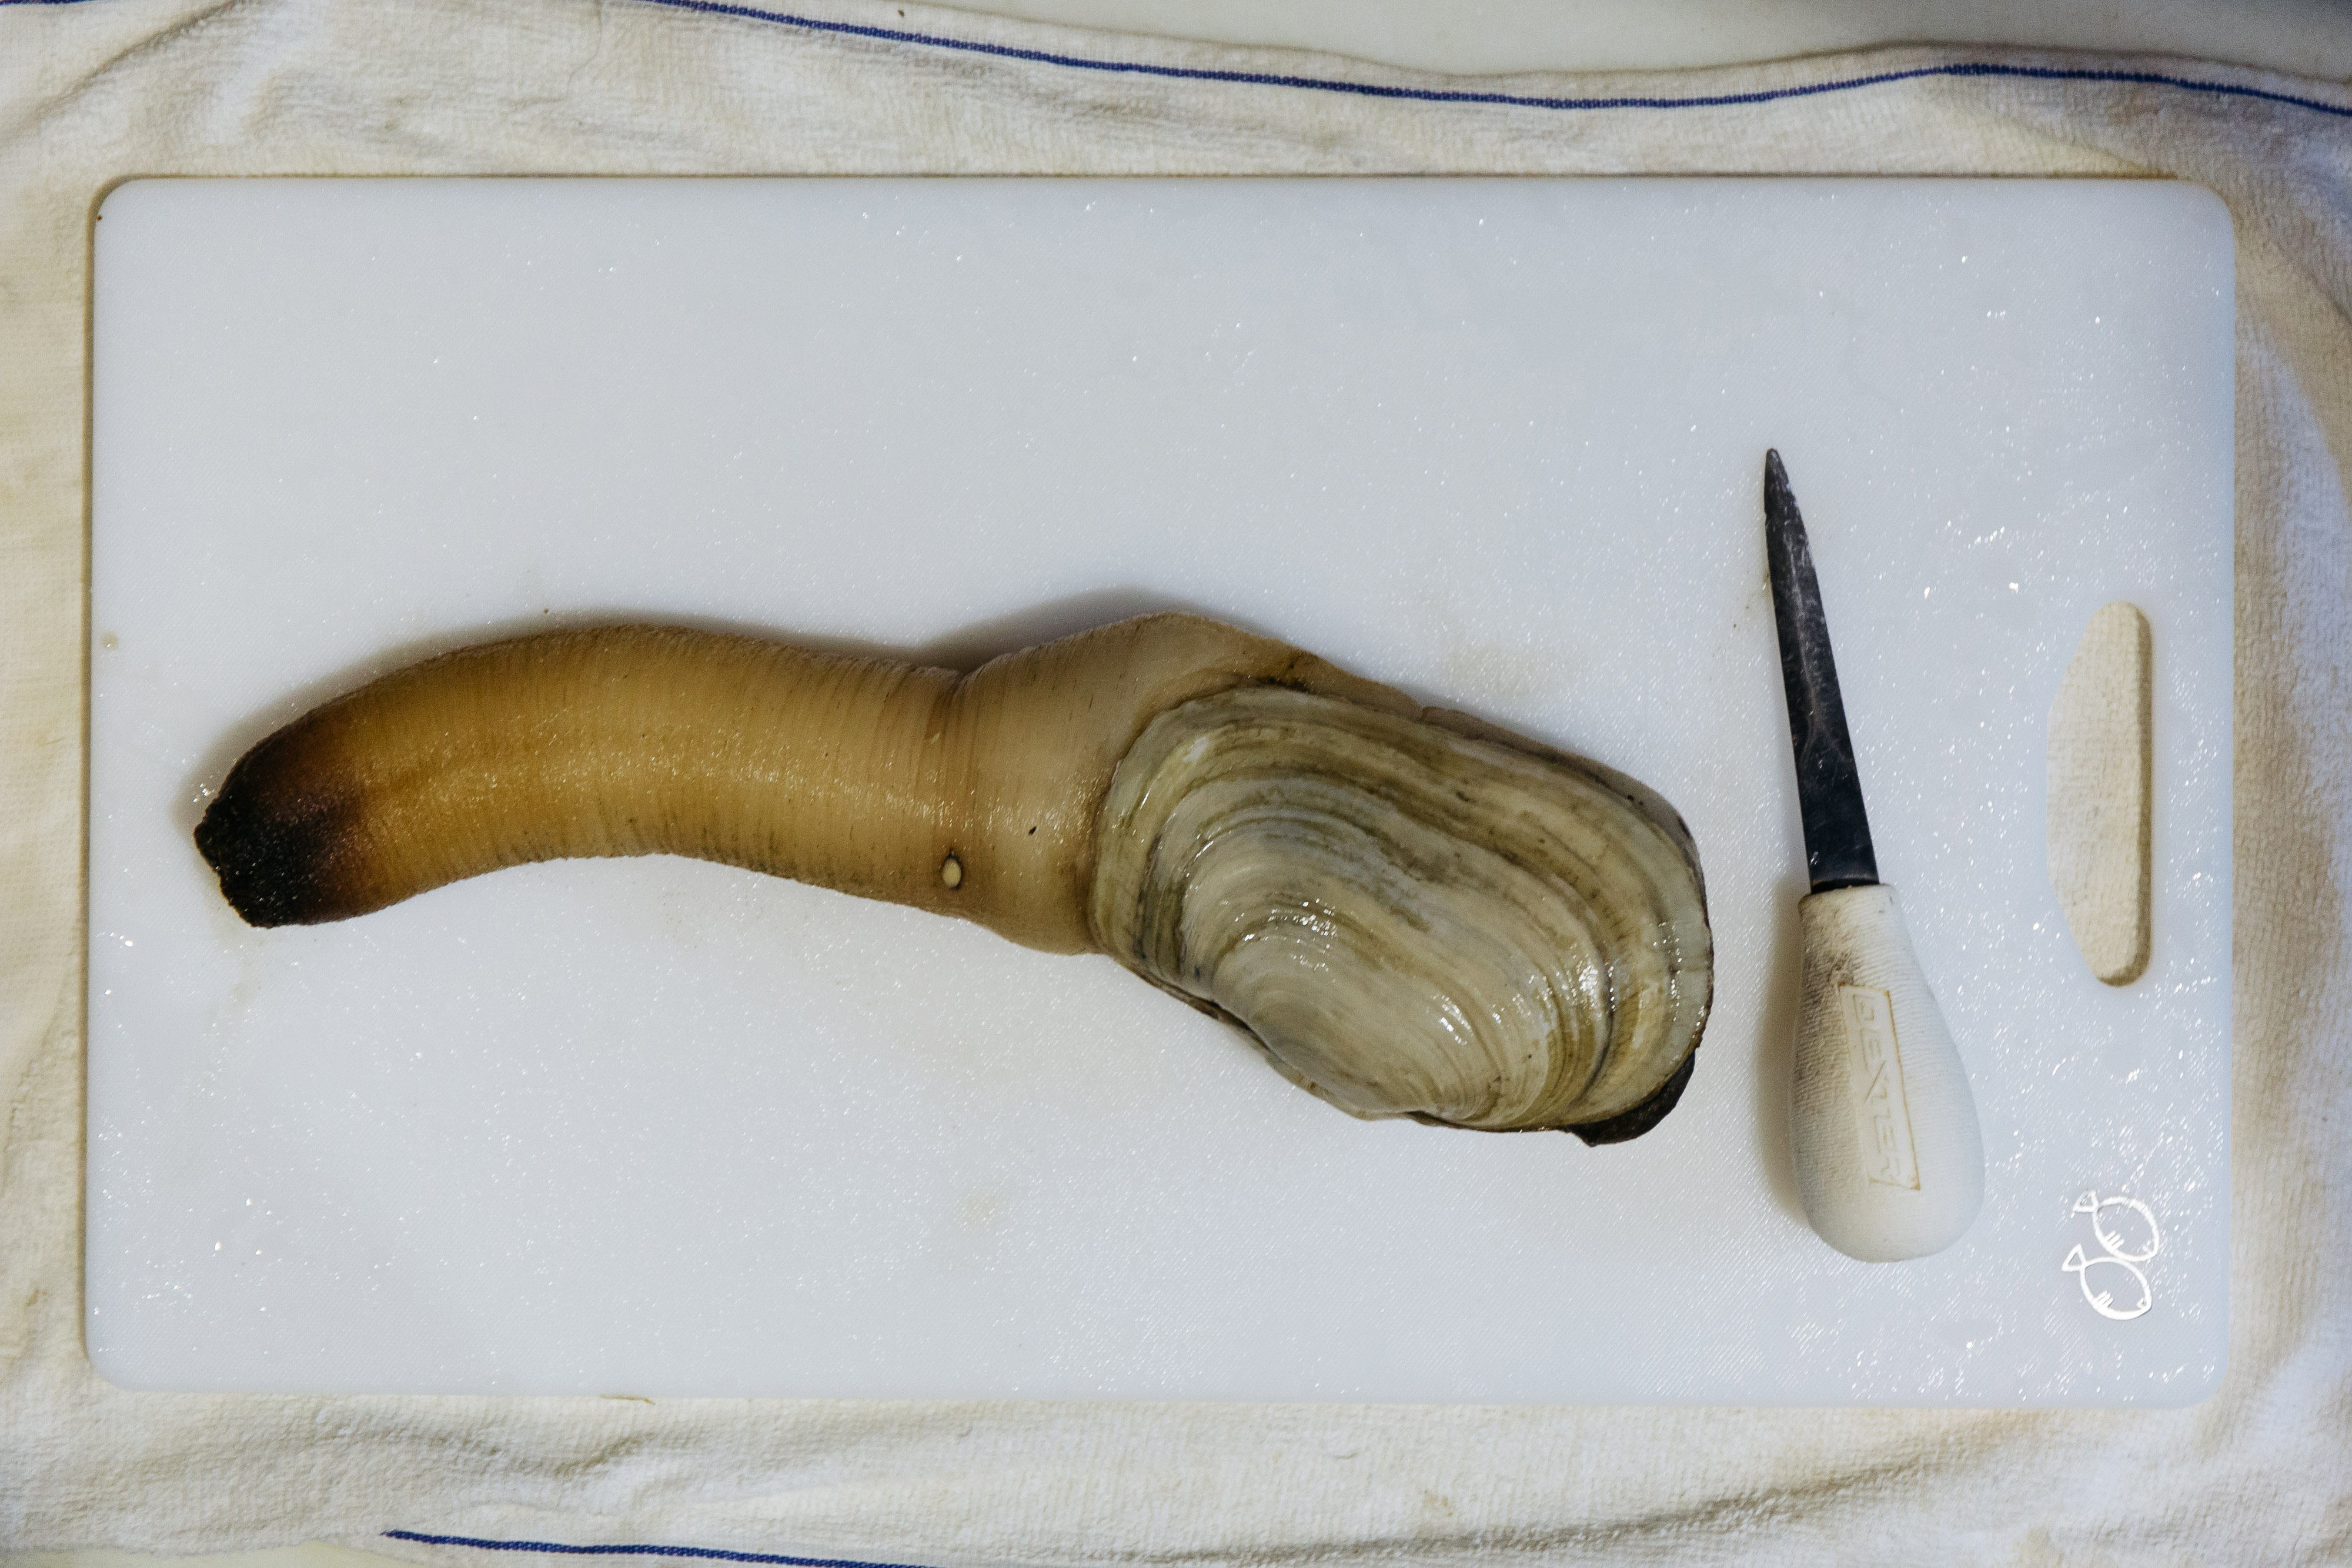 Geoduck Production At Taylor Shellfish Farm As Chinese Consumers Import Nearly 1 Million Pound Annual Haul